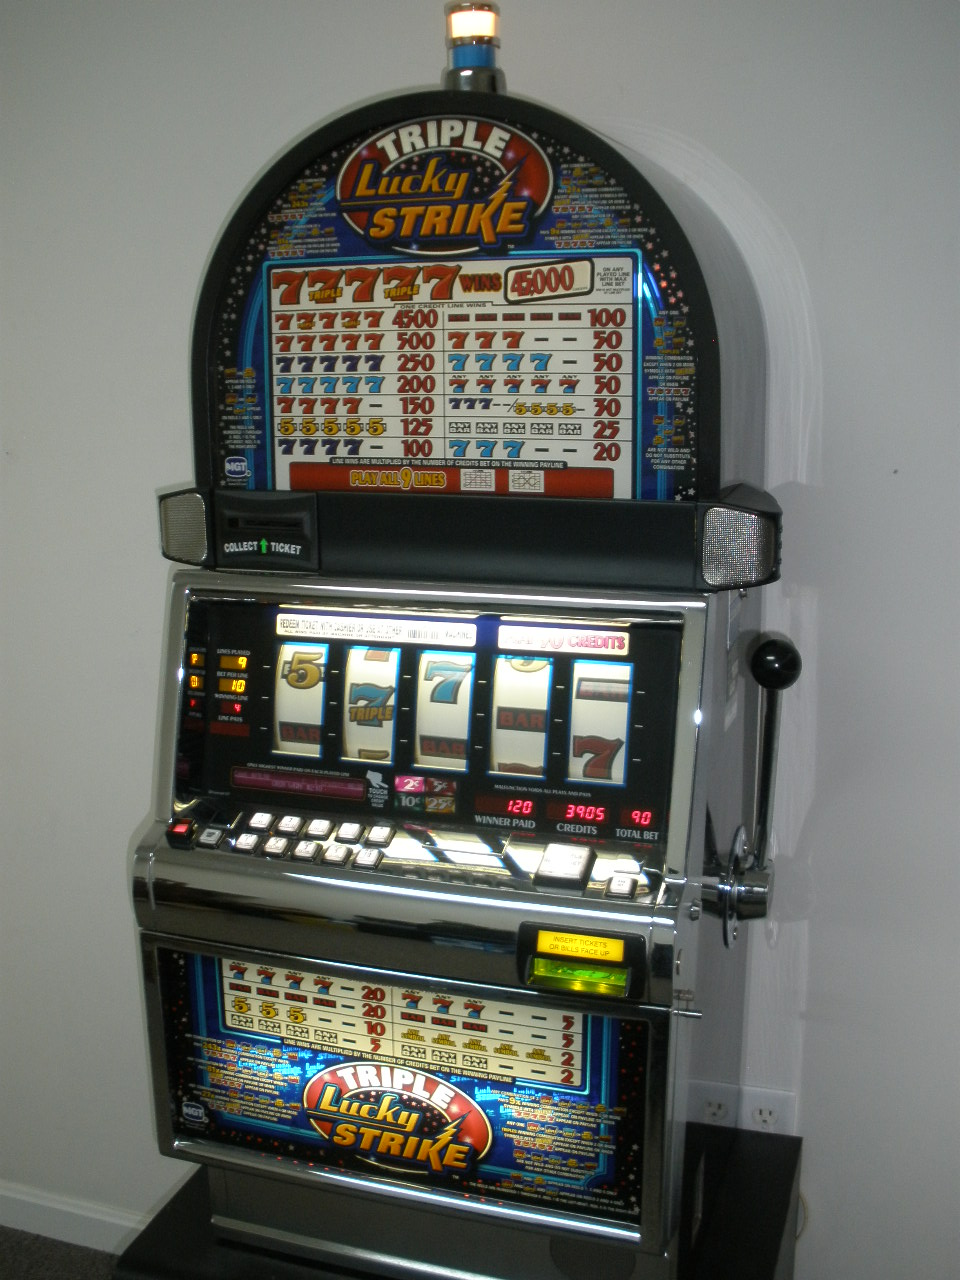 IGT TRIPLE LUCKY STRIKE FIVE REEL S2000 SLOT MACHINE For